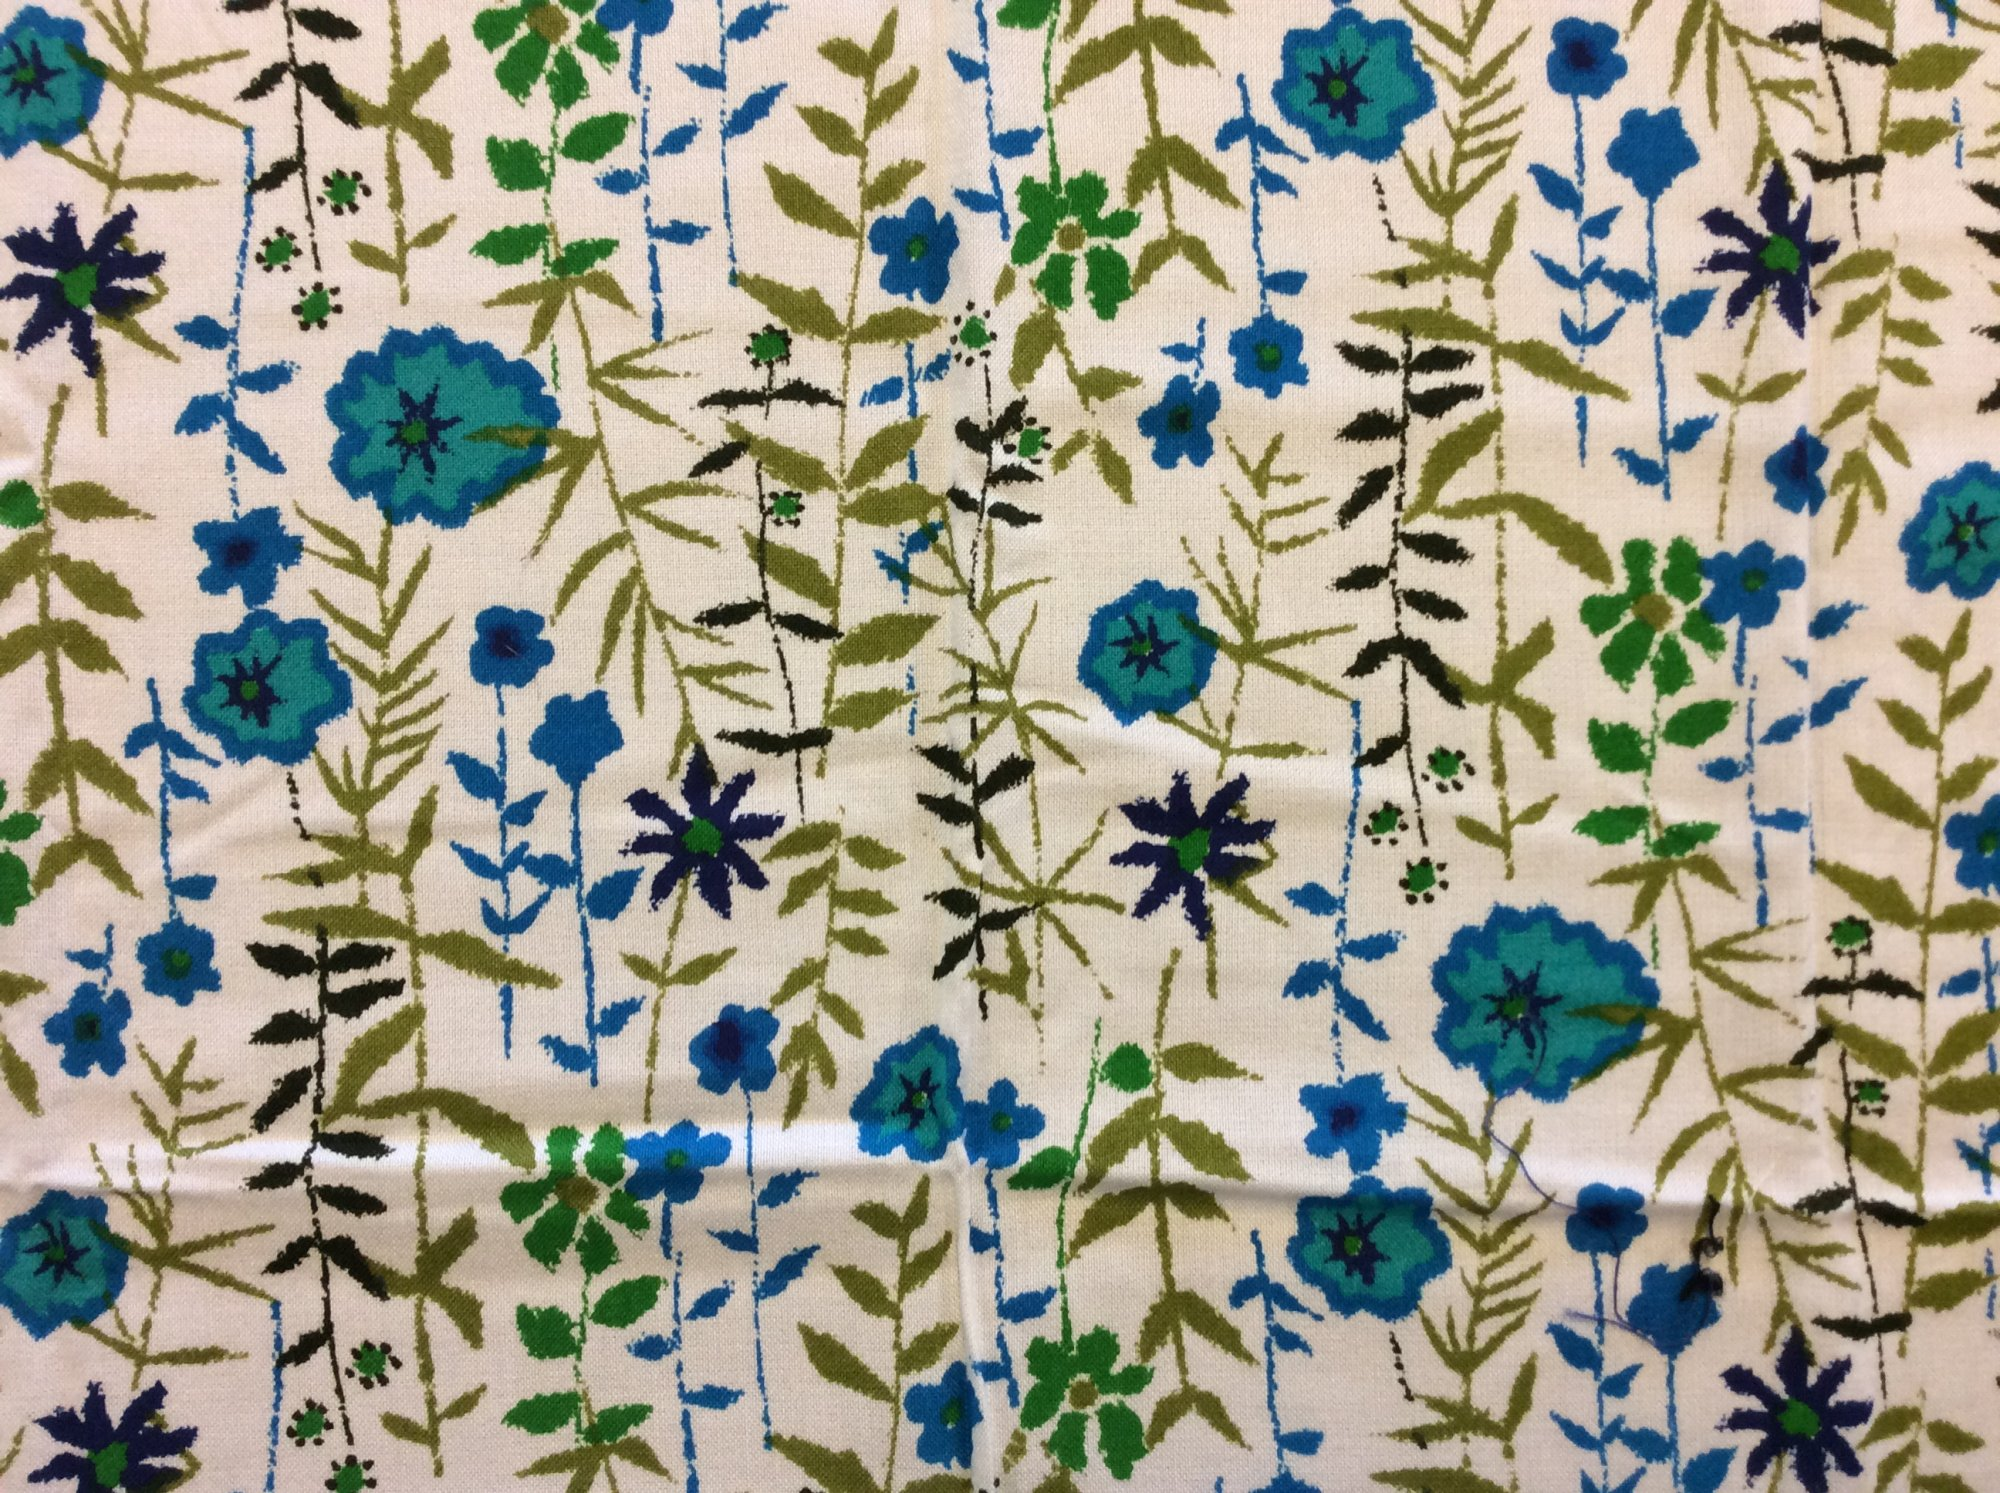 True Vintage Textured Floral Fabric Blue Purple Green Garden Print Home Decor Apparel Fabric TRV020